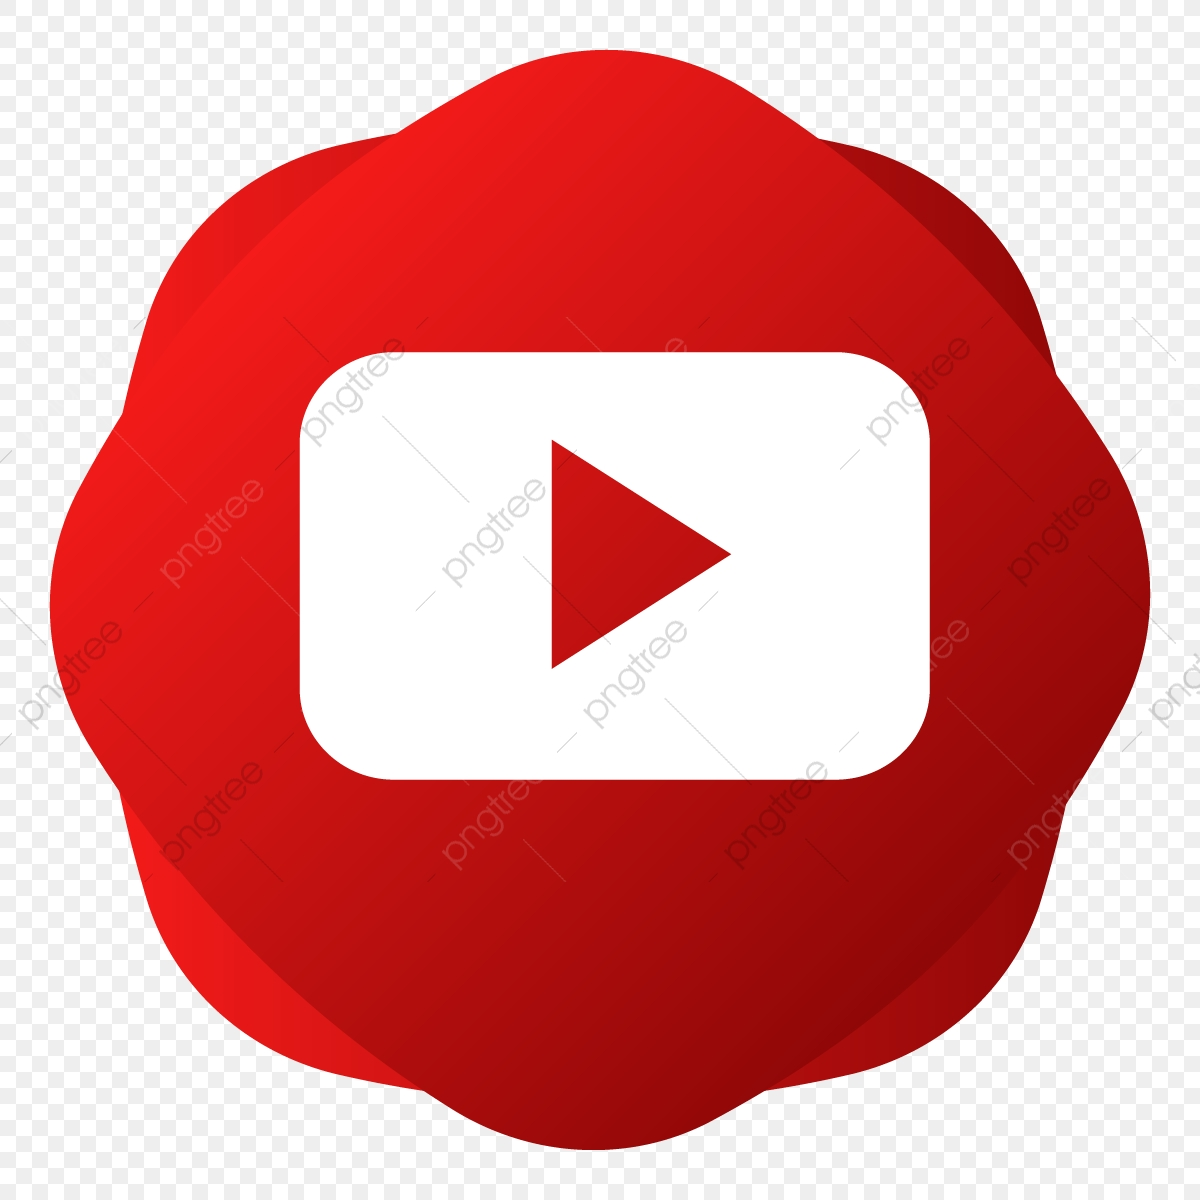 Youtube Png Icon, Youtube, Youtube, Youtube Elemet ícone PNG e vetor.